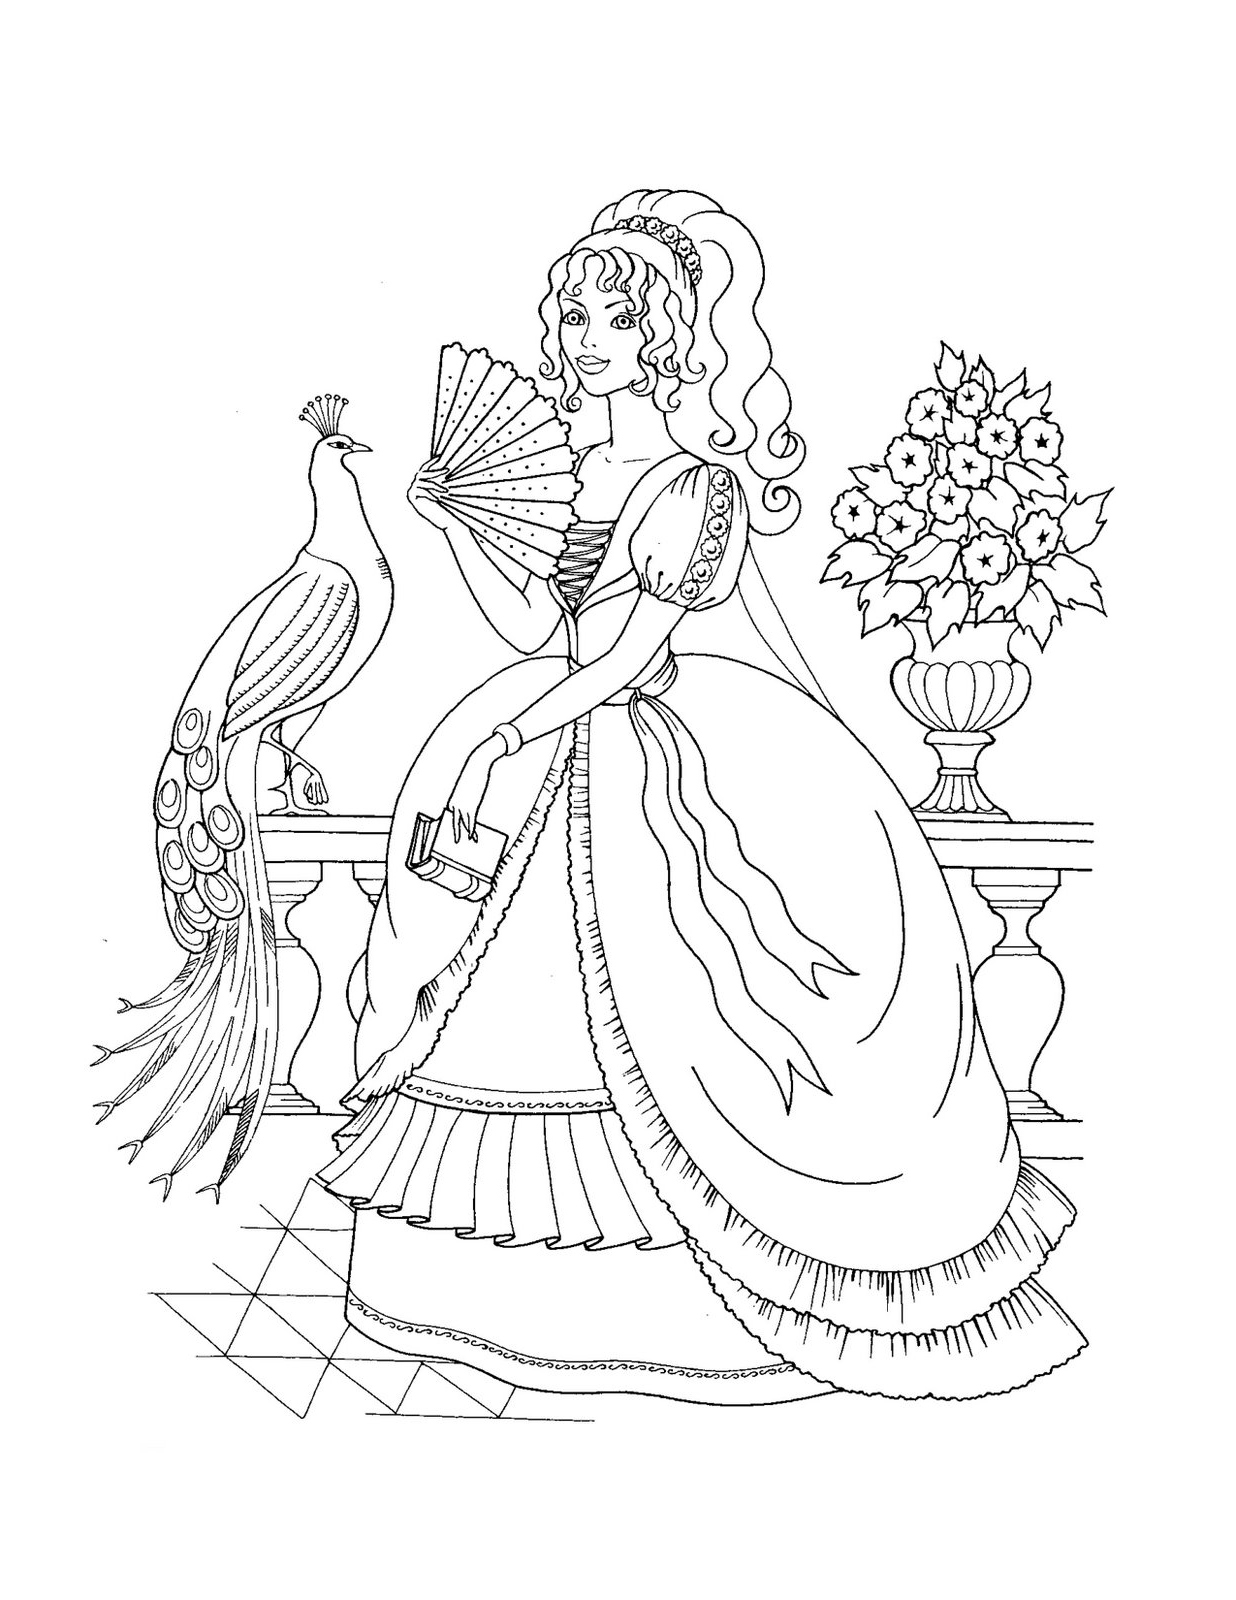 coloring pages disney princesses online - photo#28